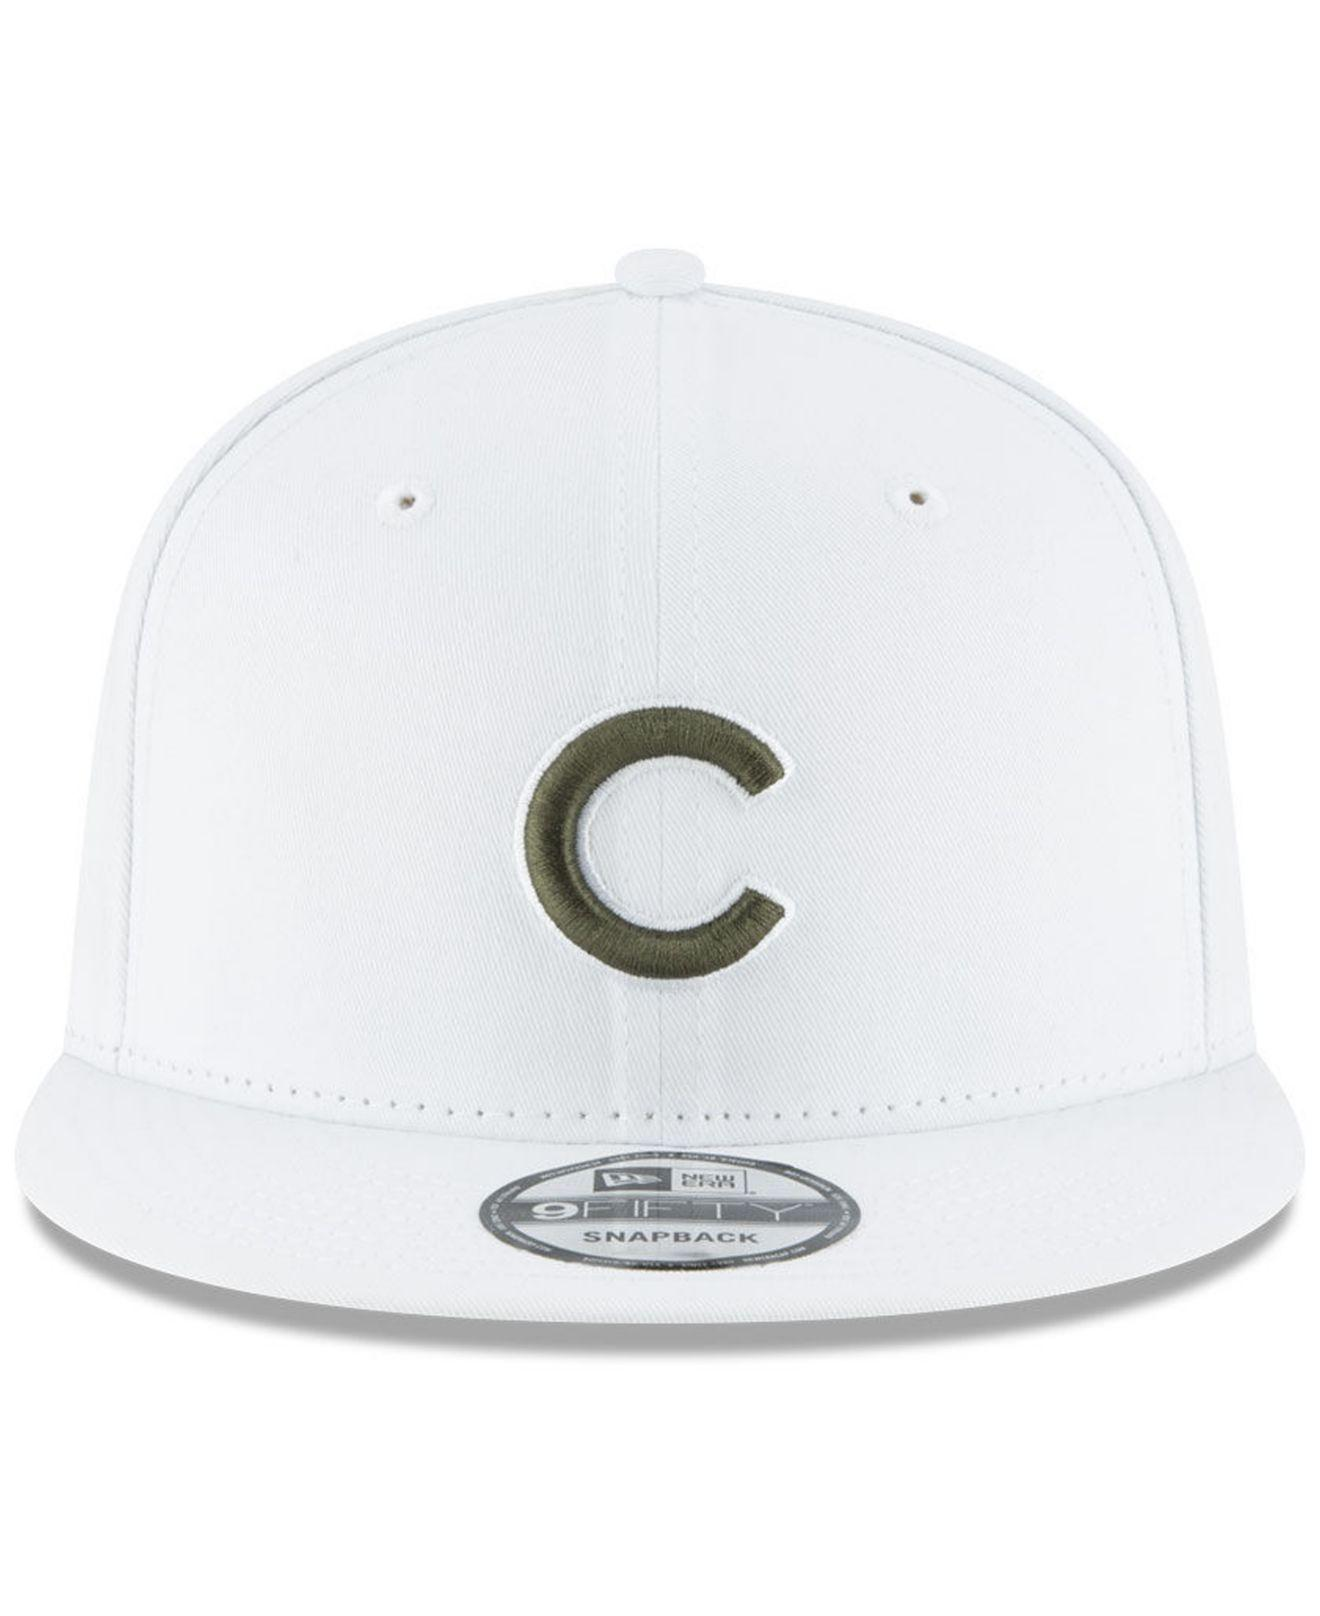 sports shoes 64f5d 5f302 Lyst - KTZ Fall Shades 9fifty Snapback Cap in White for Men